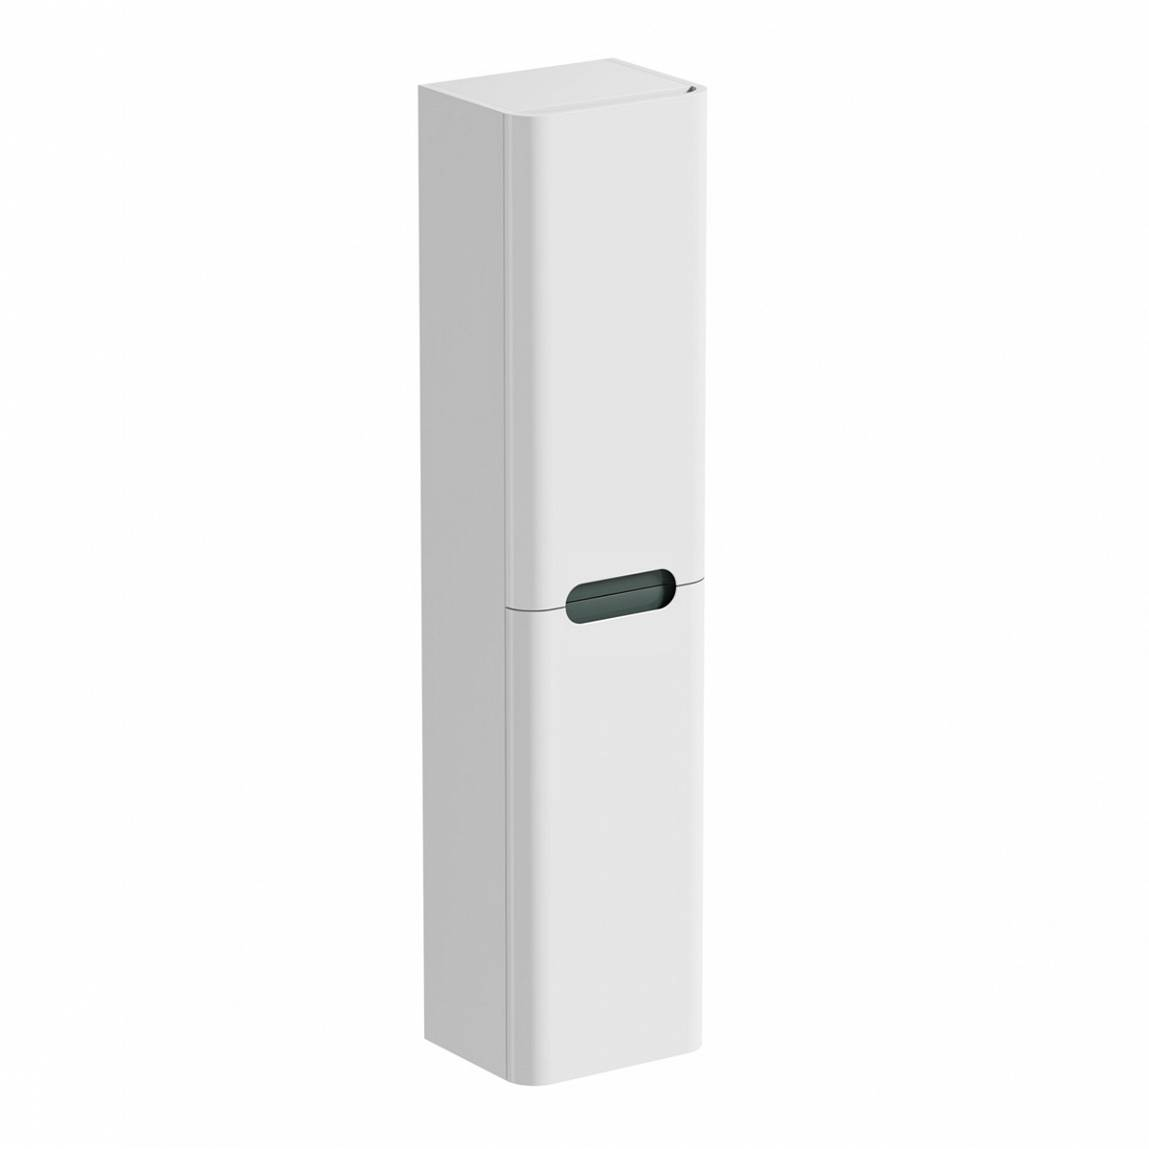 Image of Planet Select White Wall Cabinet with Slate Insert